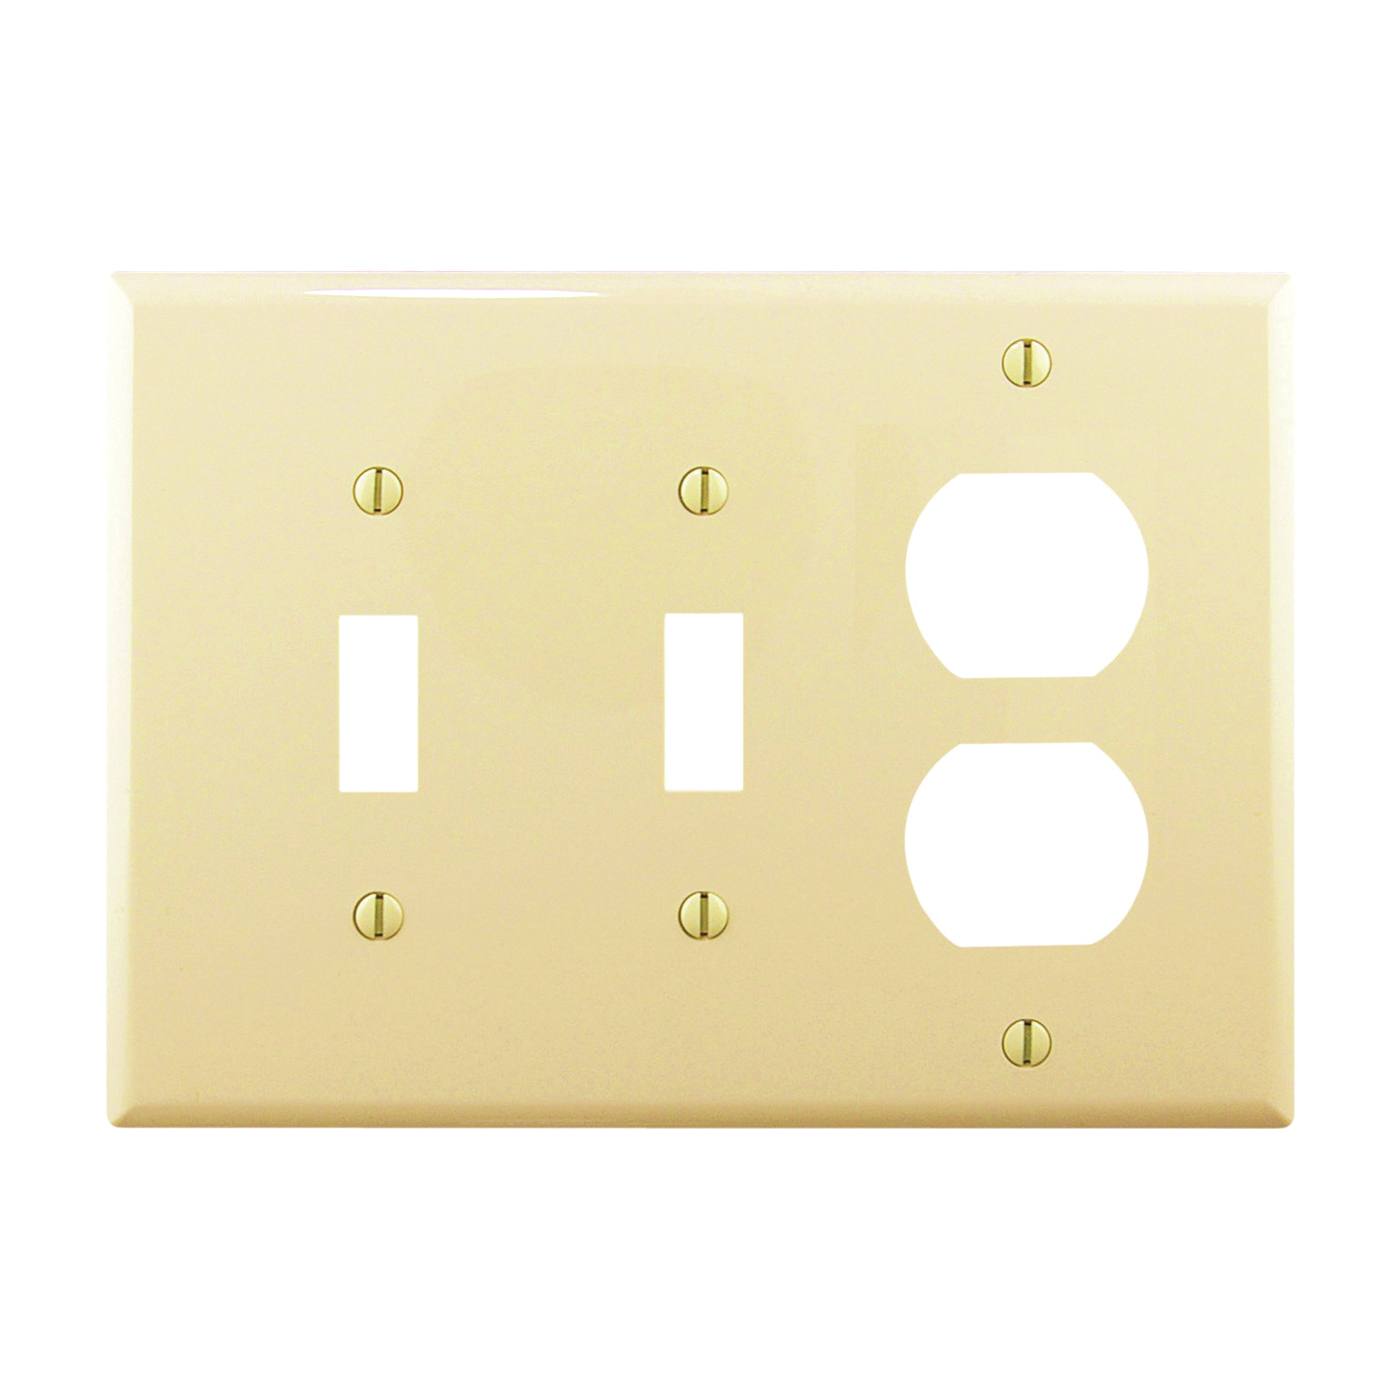 Picture of Eaton Wiring Devices PJ28V Wallplate, 4-7/8 in L, 6-3/4 in W, 3-Gang, Polycarbonate, Ivory, High-Gloss